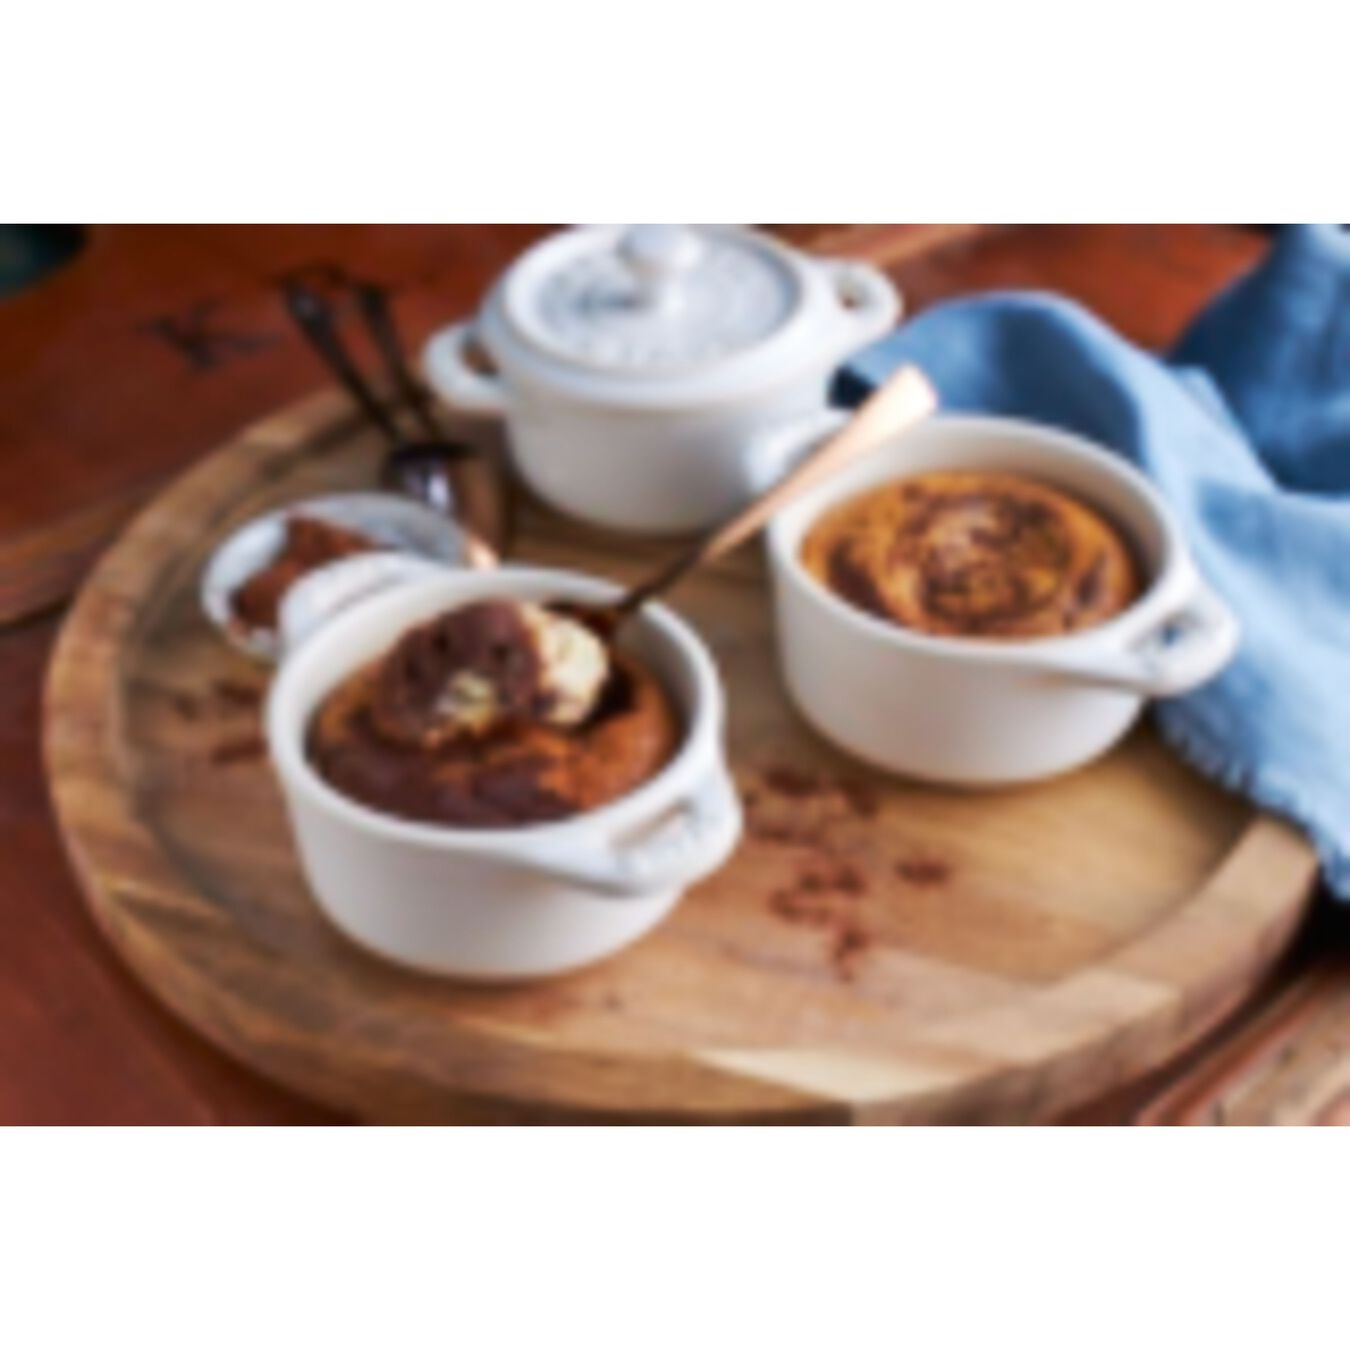 3-pc Mini Round Cocotte Set - White,,large 2